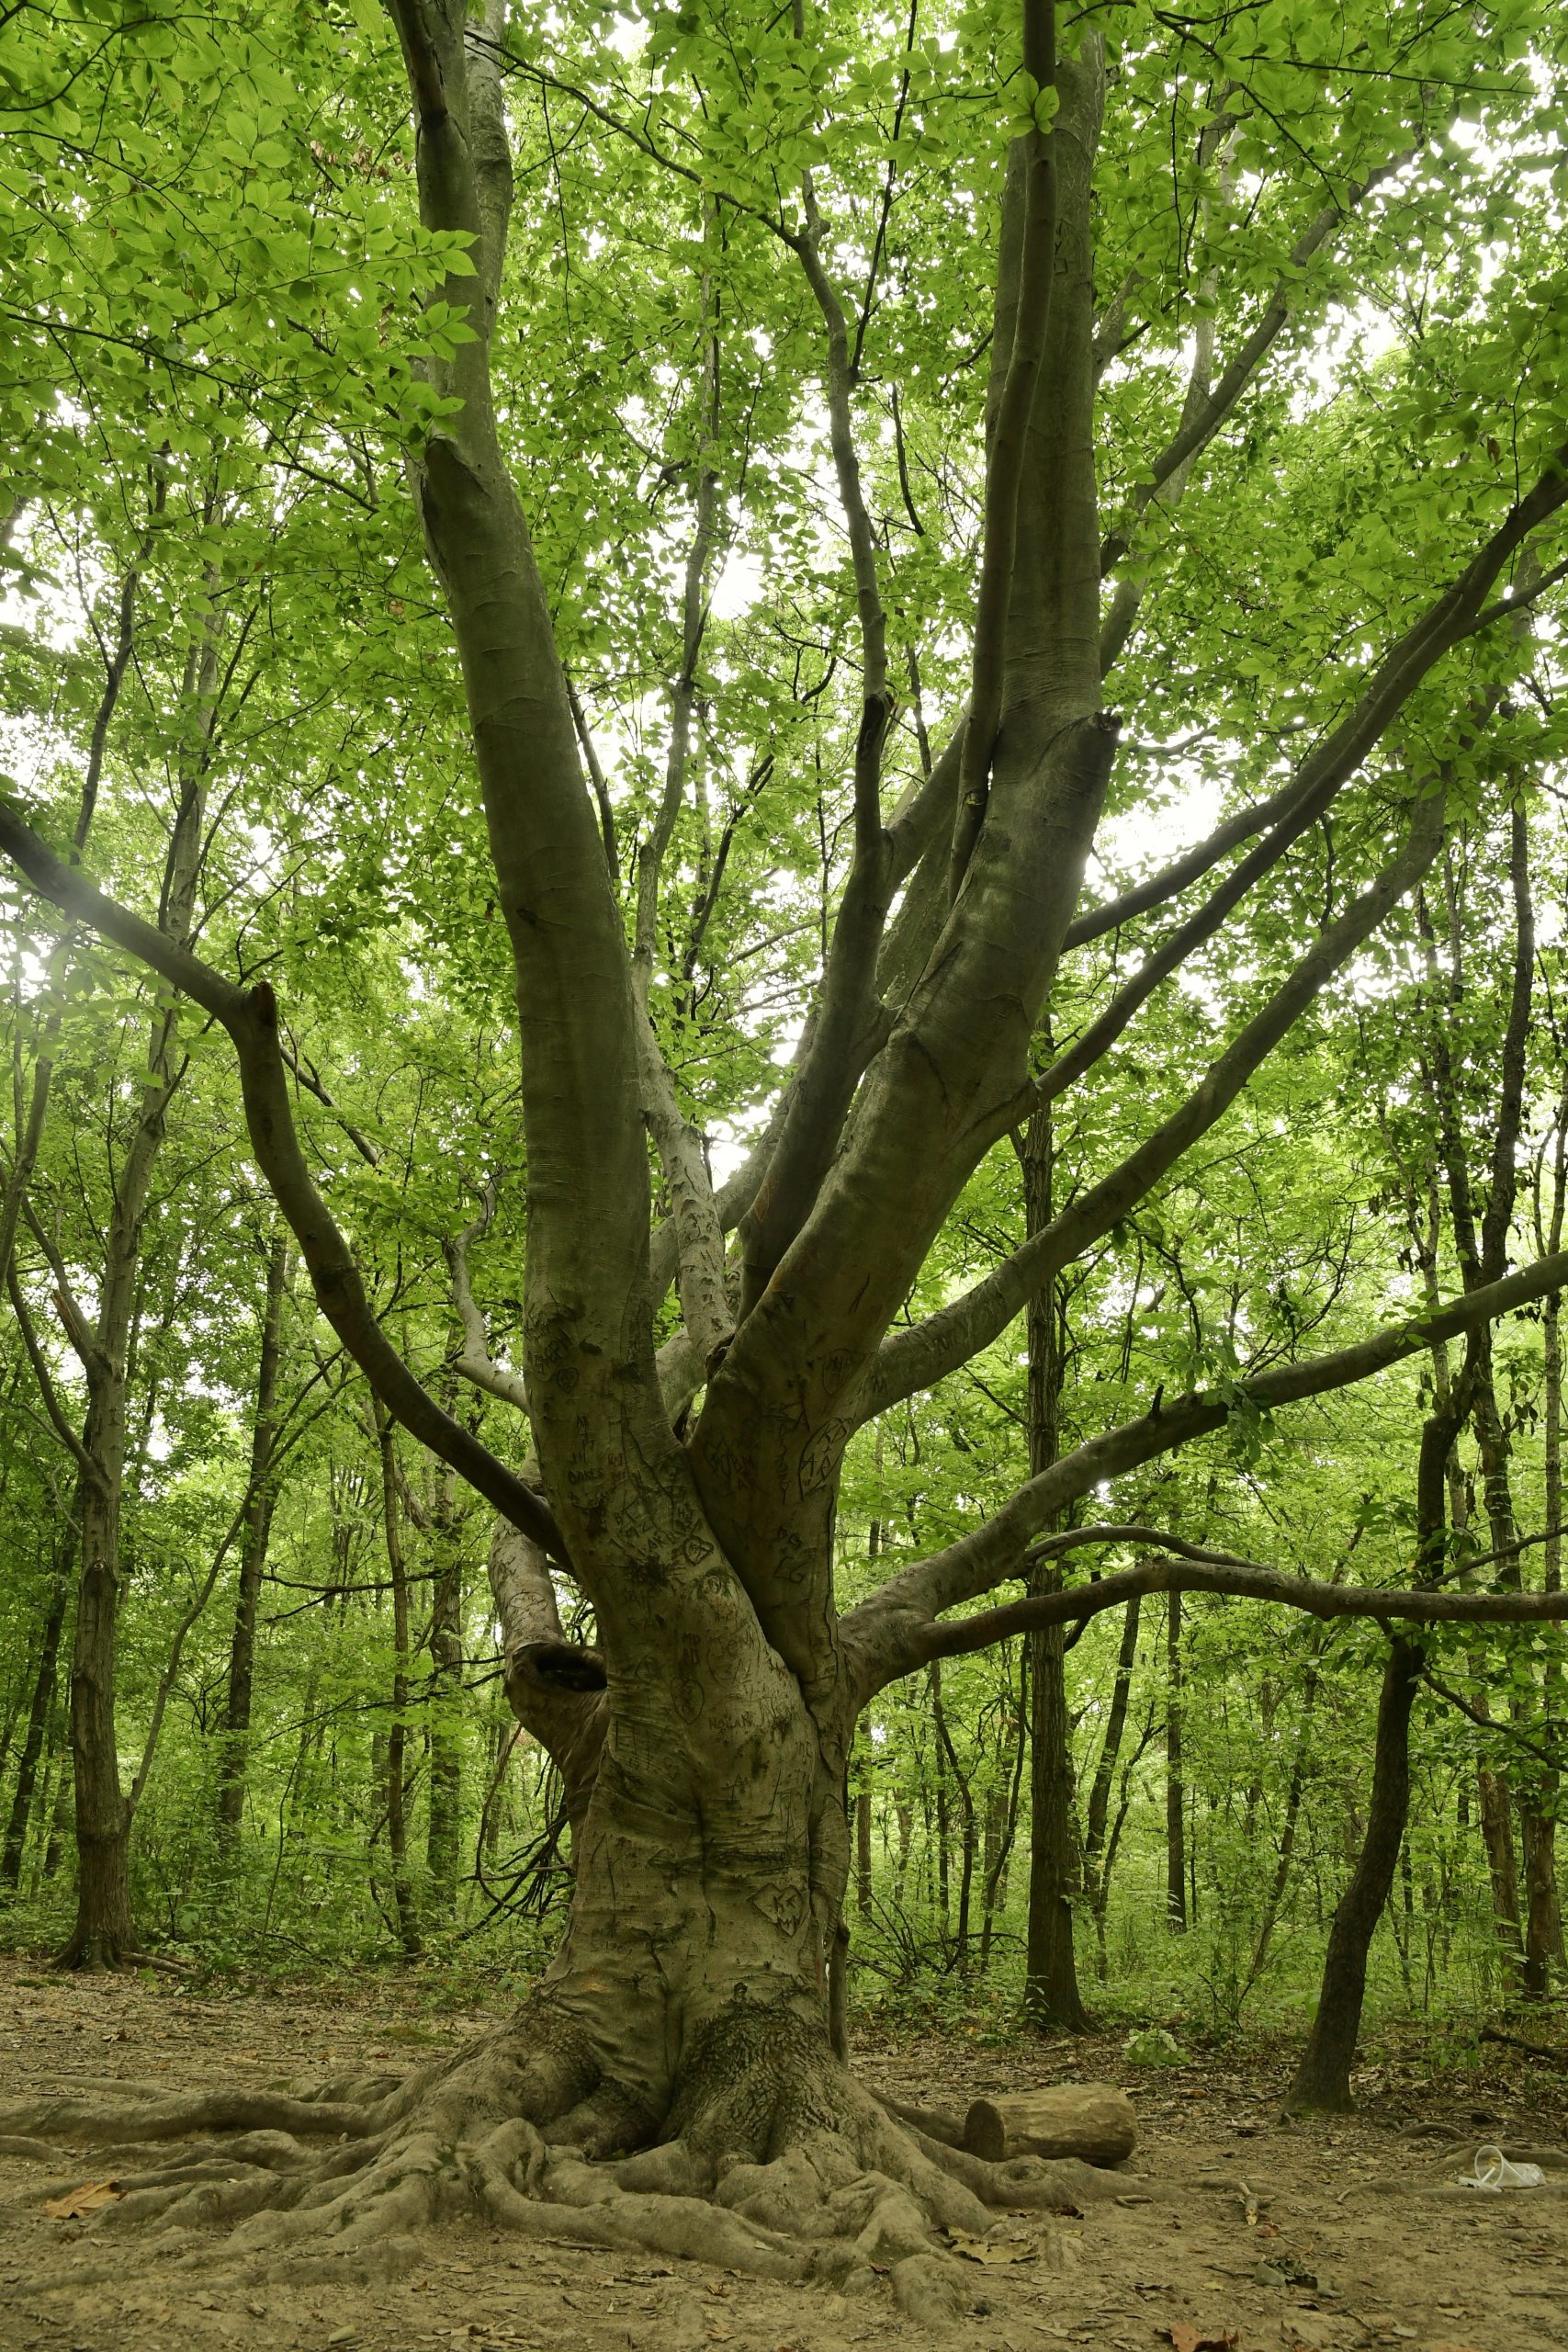 A beech tree stands tall in the forest at Farbach-Werner Nature Preserve.